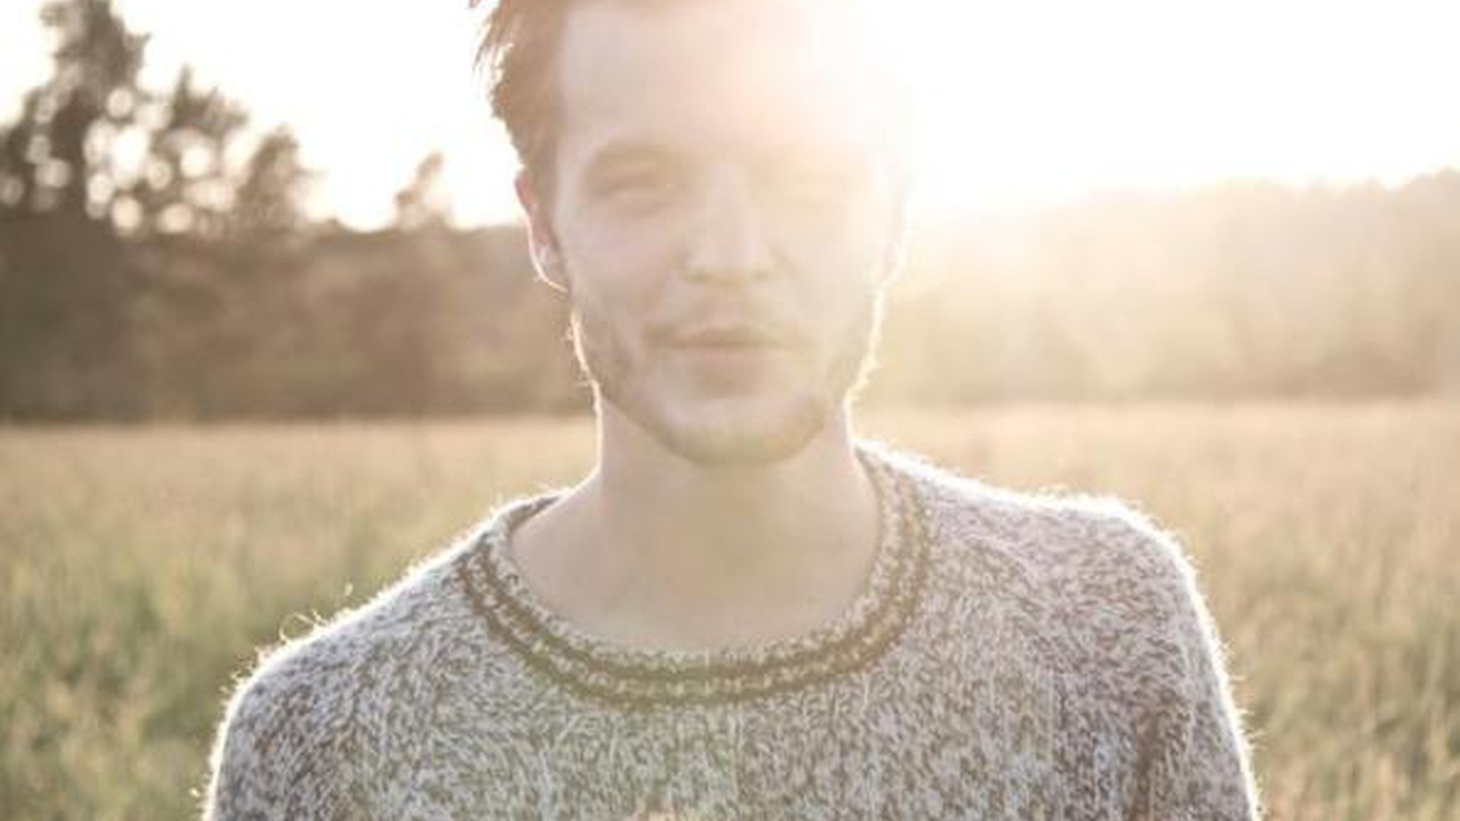 Swedish musician Kristian Matsson, who goes by the moniker The Tallest Man on Earth, sings striking folks songs in a voice that have led many to compare him to Bob Dylan.